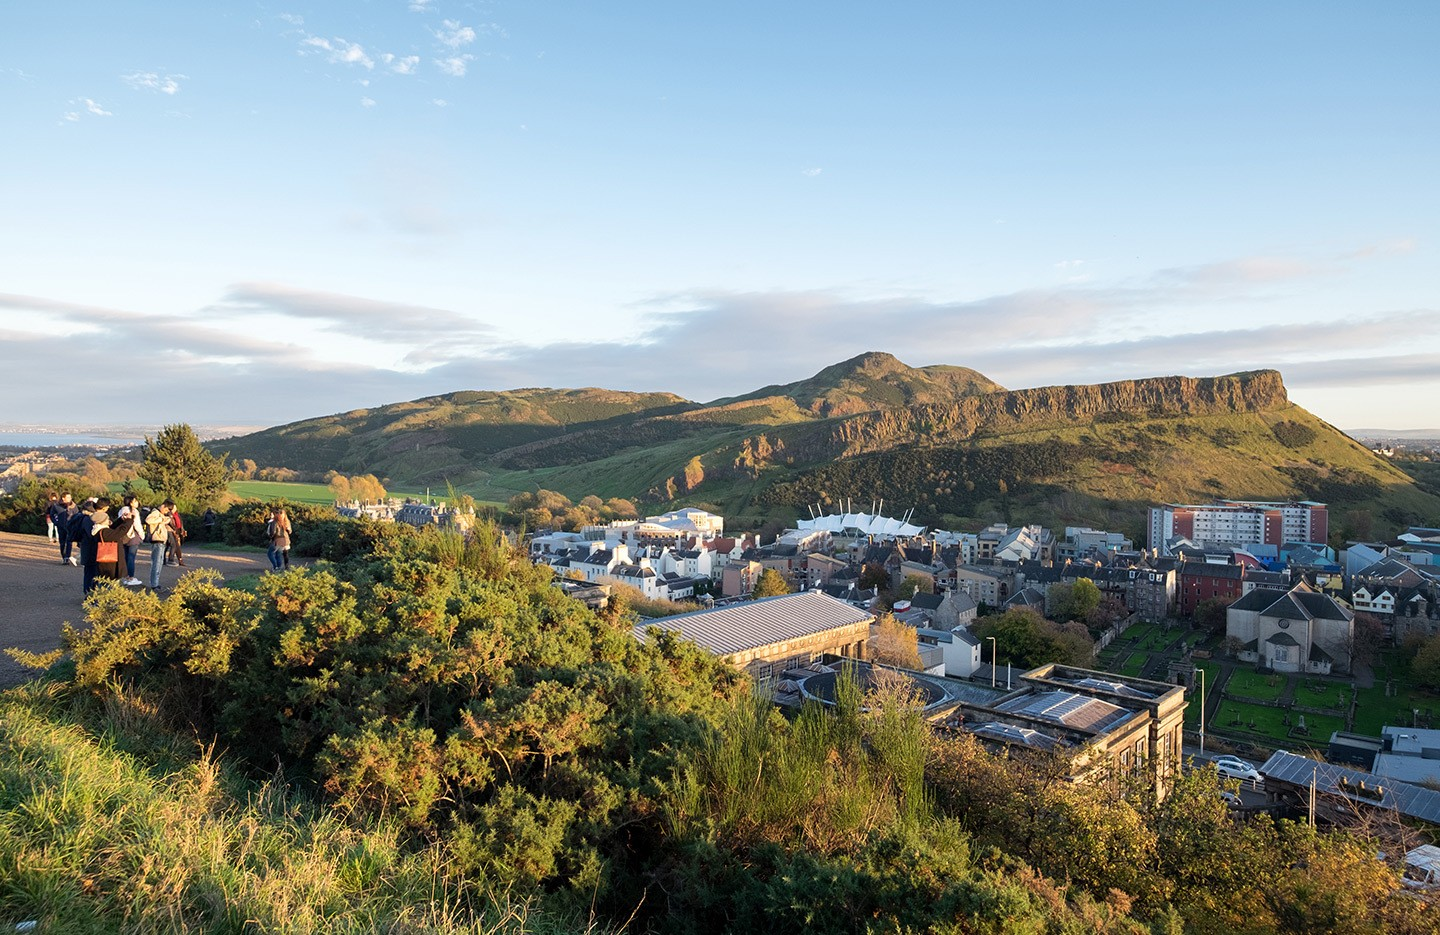 Views of Arthur's Seat Edinburgh from Calton Hill